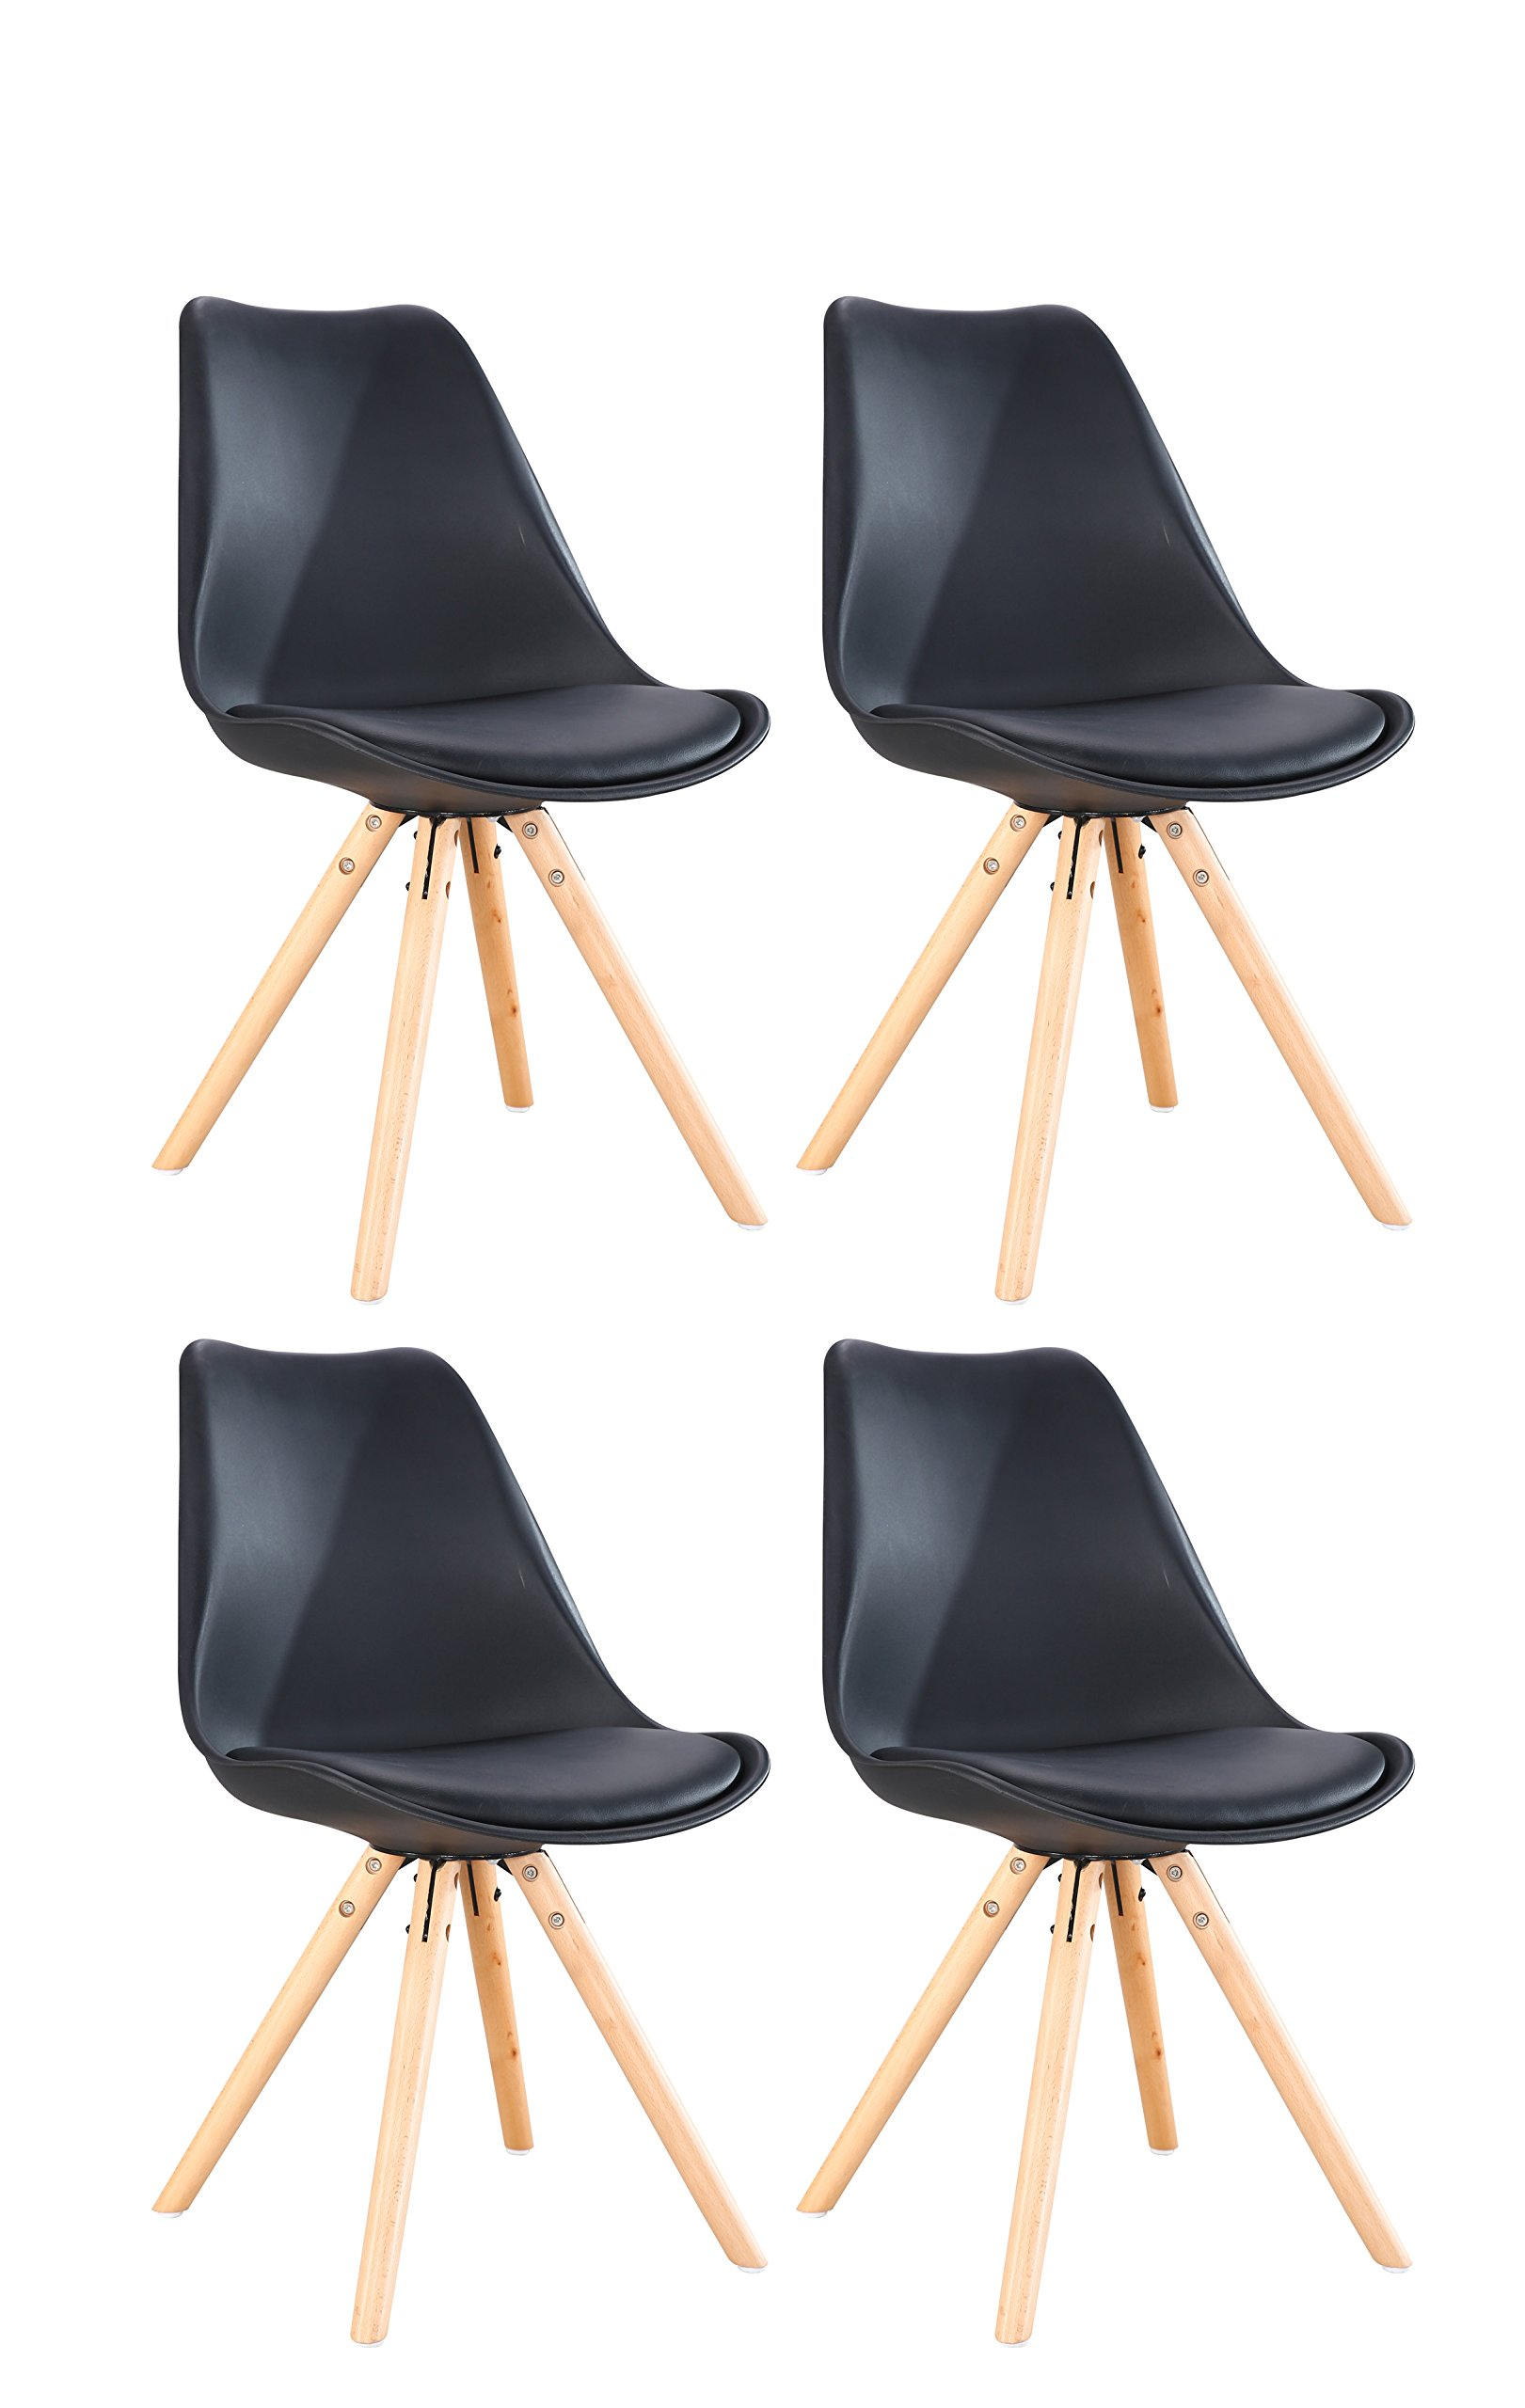 Set of 4 Modern Designer Retro Dining/Living room Chairs Wood Leg Side Style, Soft Padded Seat by Oye Hoye Quick Easy Assembly-Black